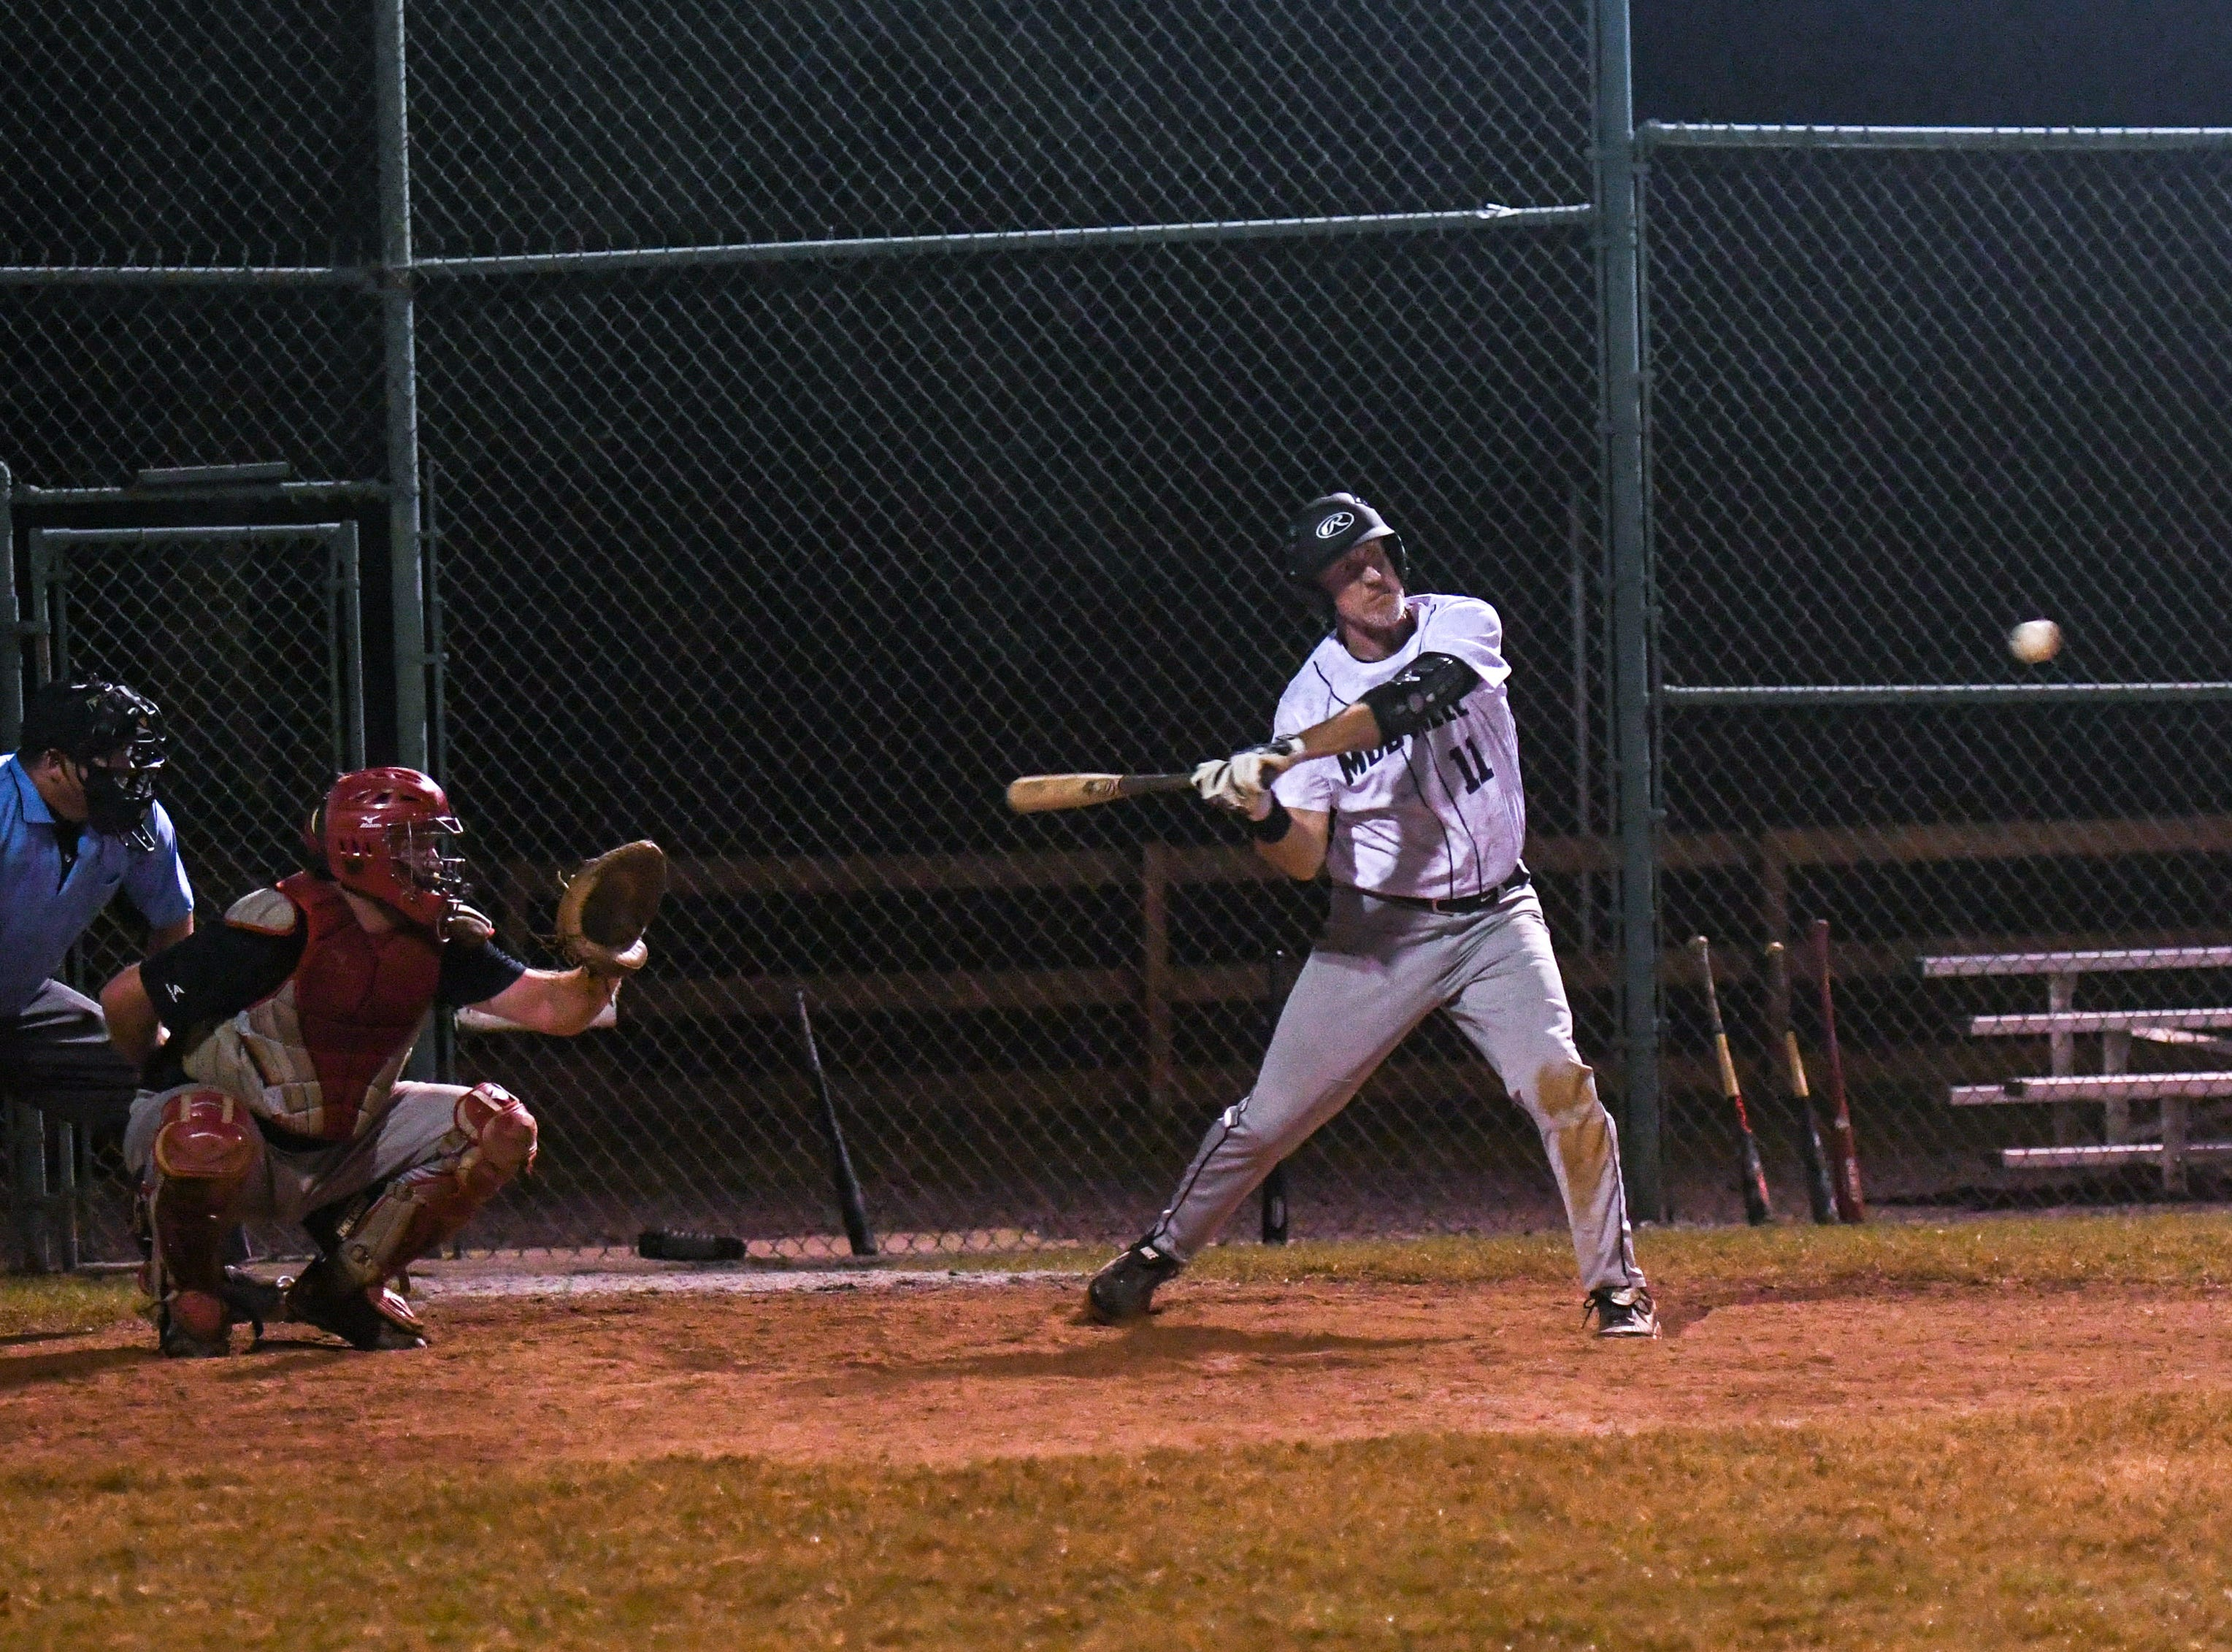 David Bennett bats during a game in the new Ty Cobb Senior Baseball League in Salisbury on Tuesday, Oct 9, 2018.